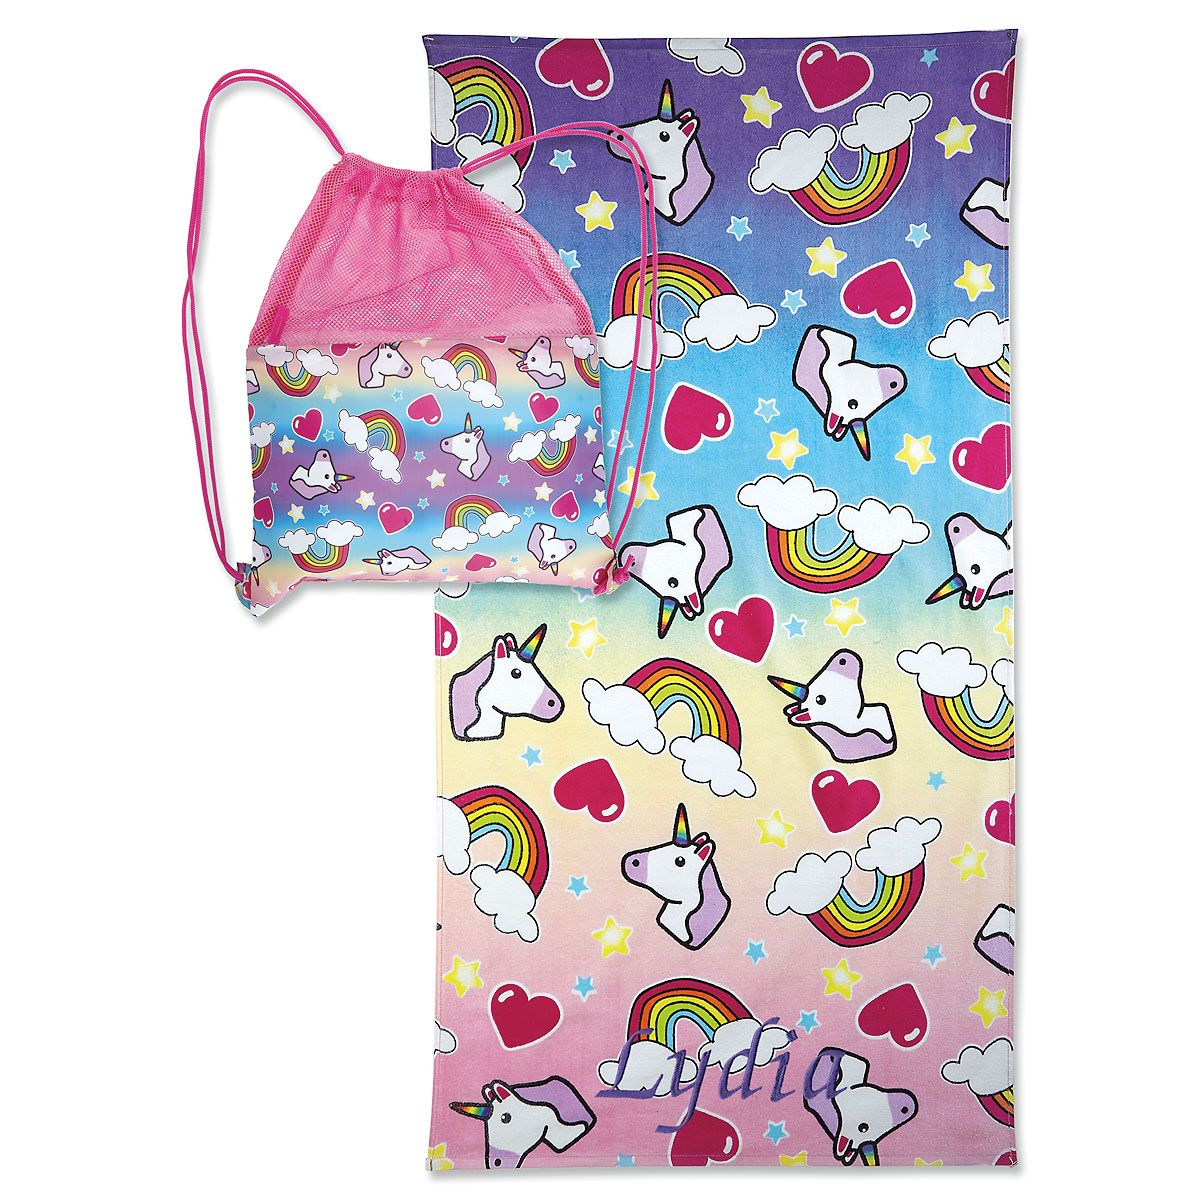 Personalized Unicorn Towel with Drawstring Bag